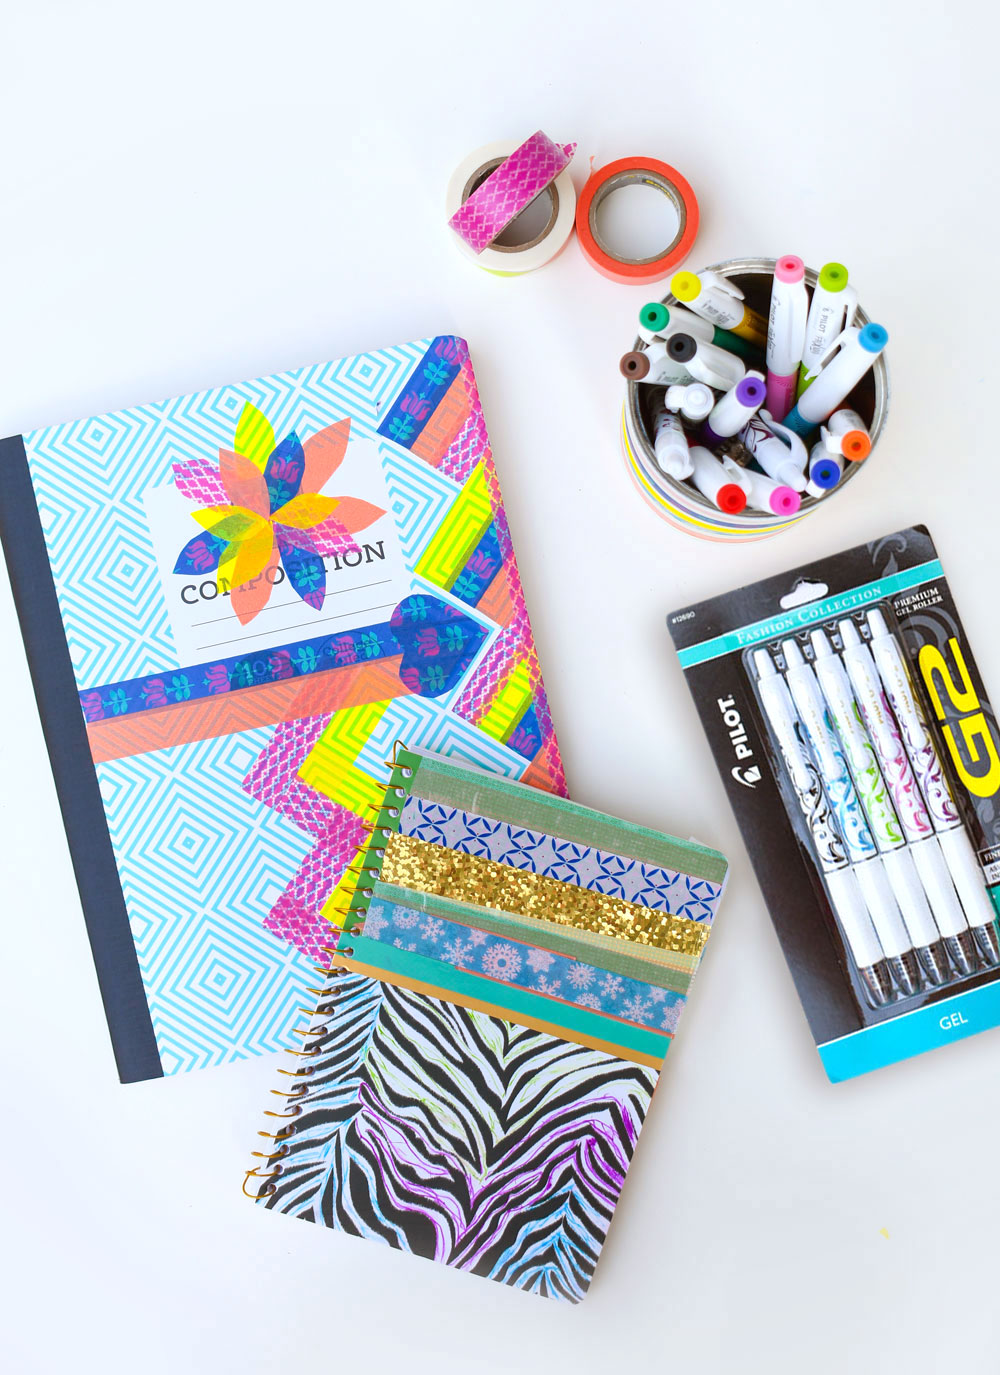 Personalize your notebook with washi tape